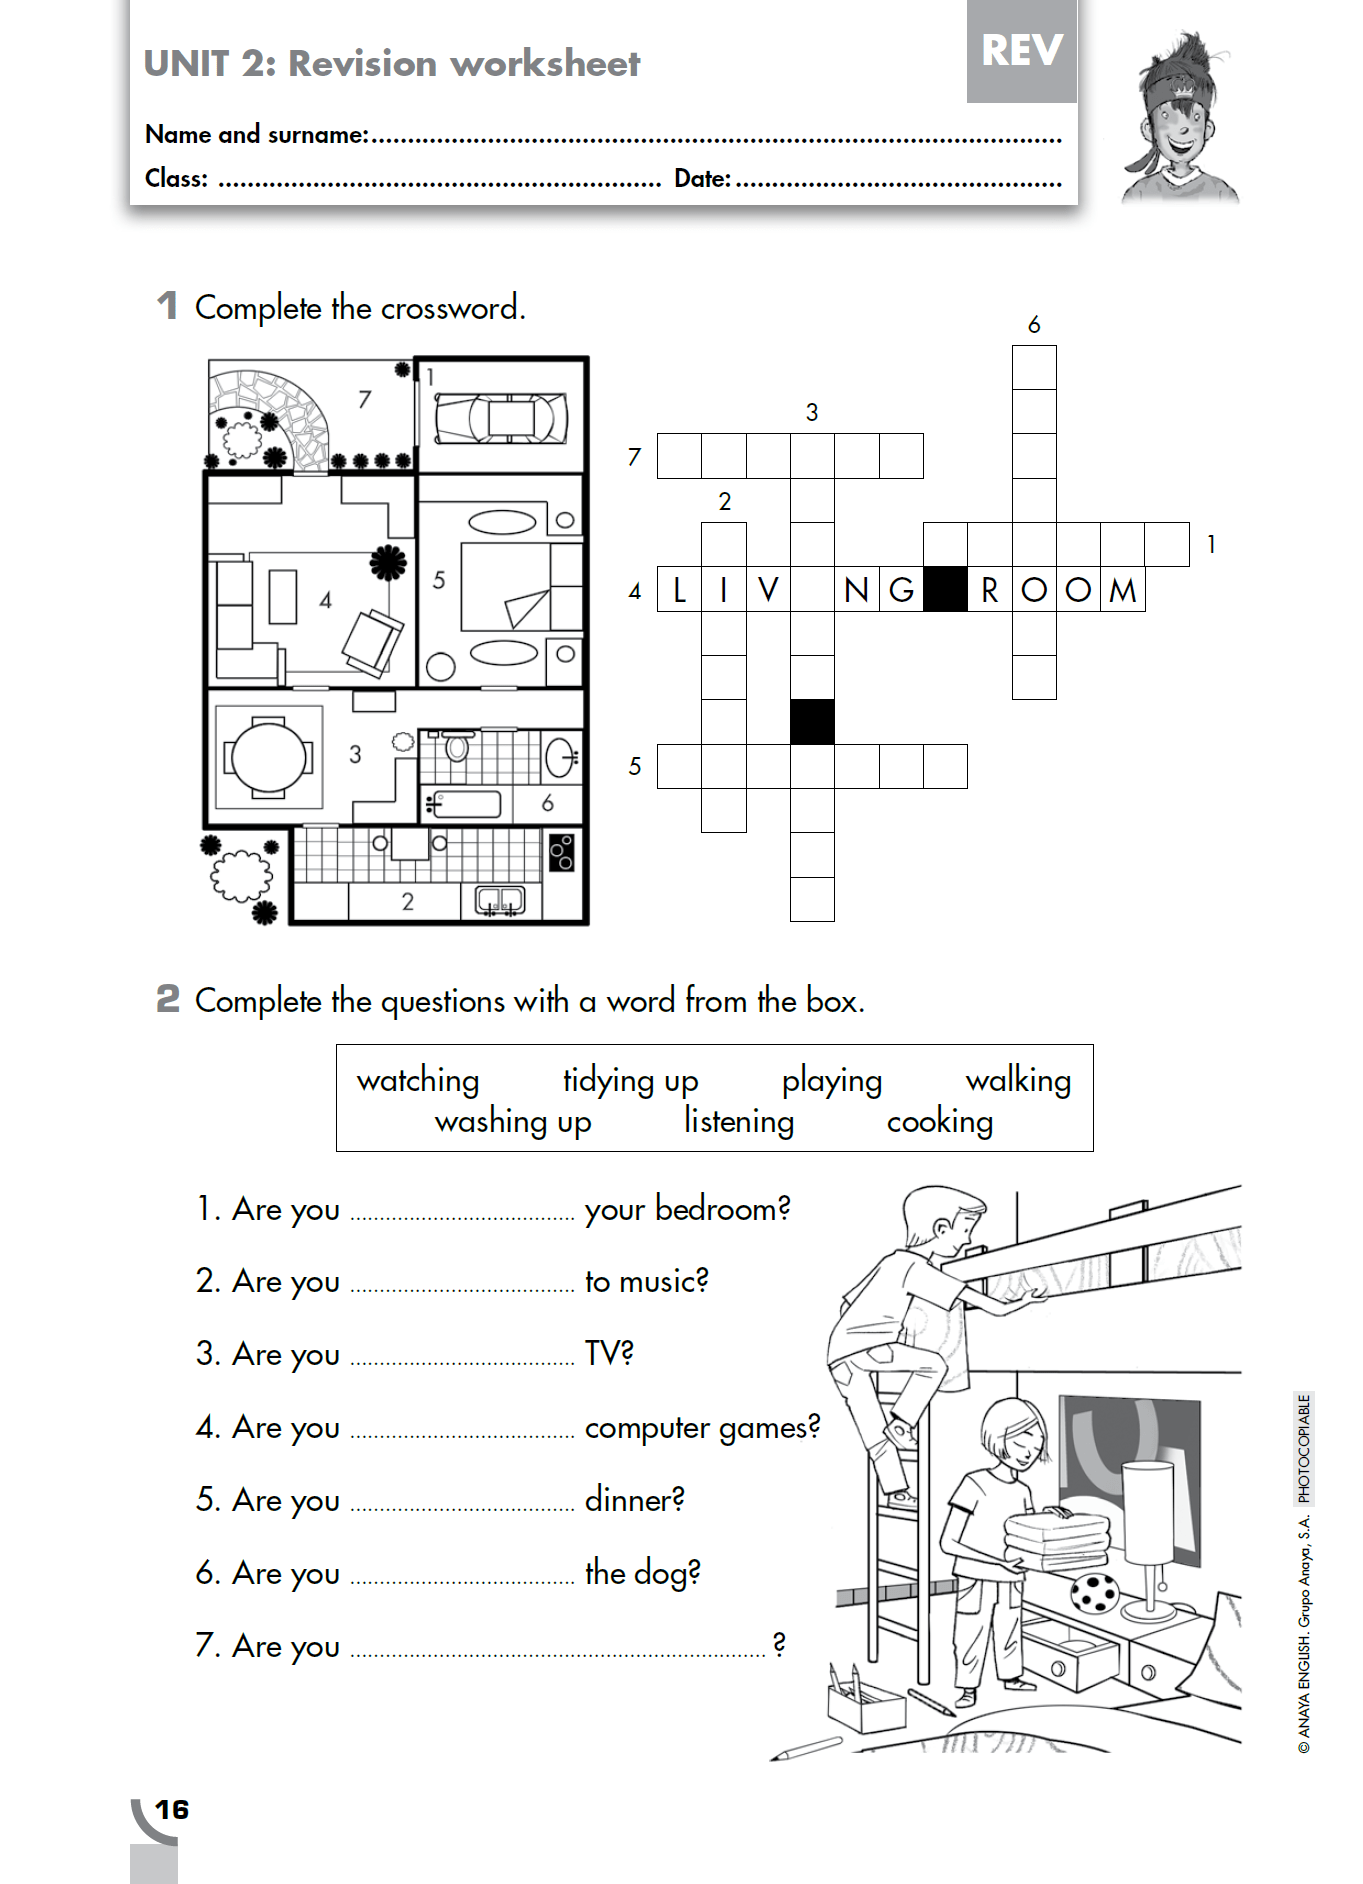 La Hora Worksheet